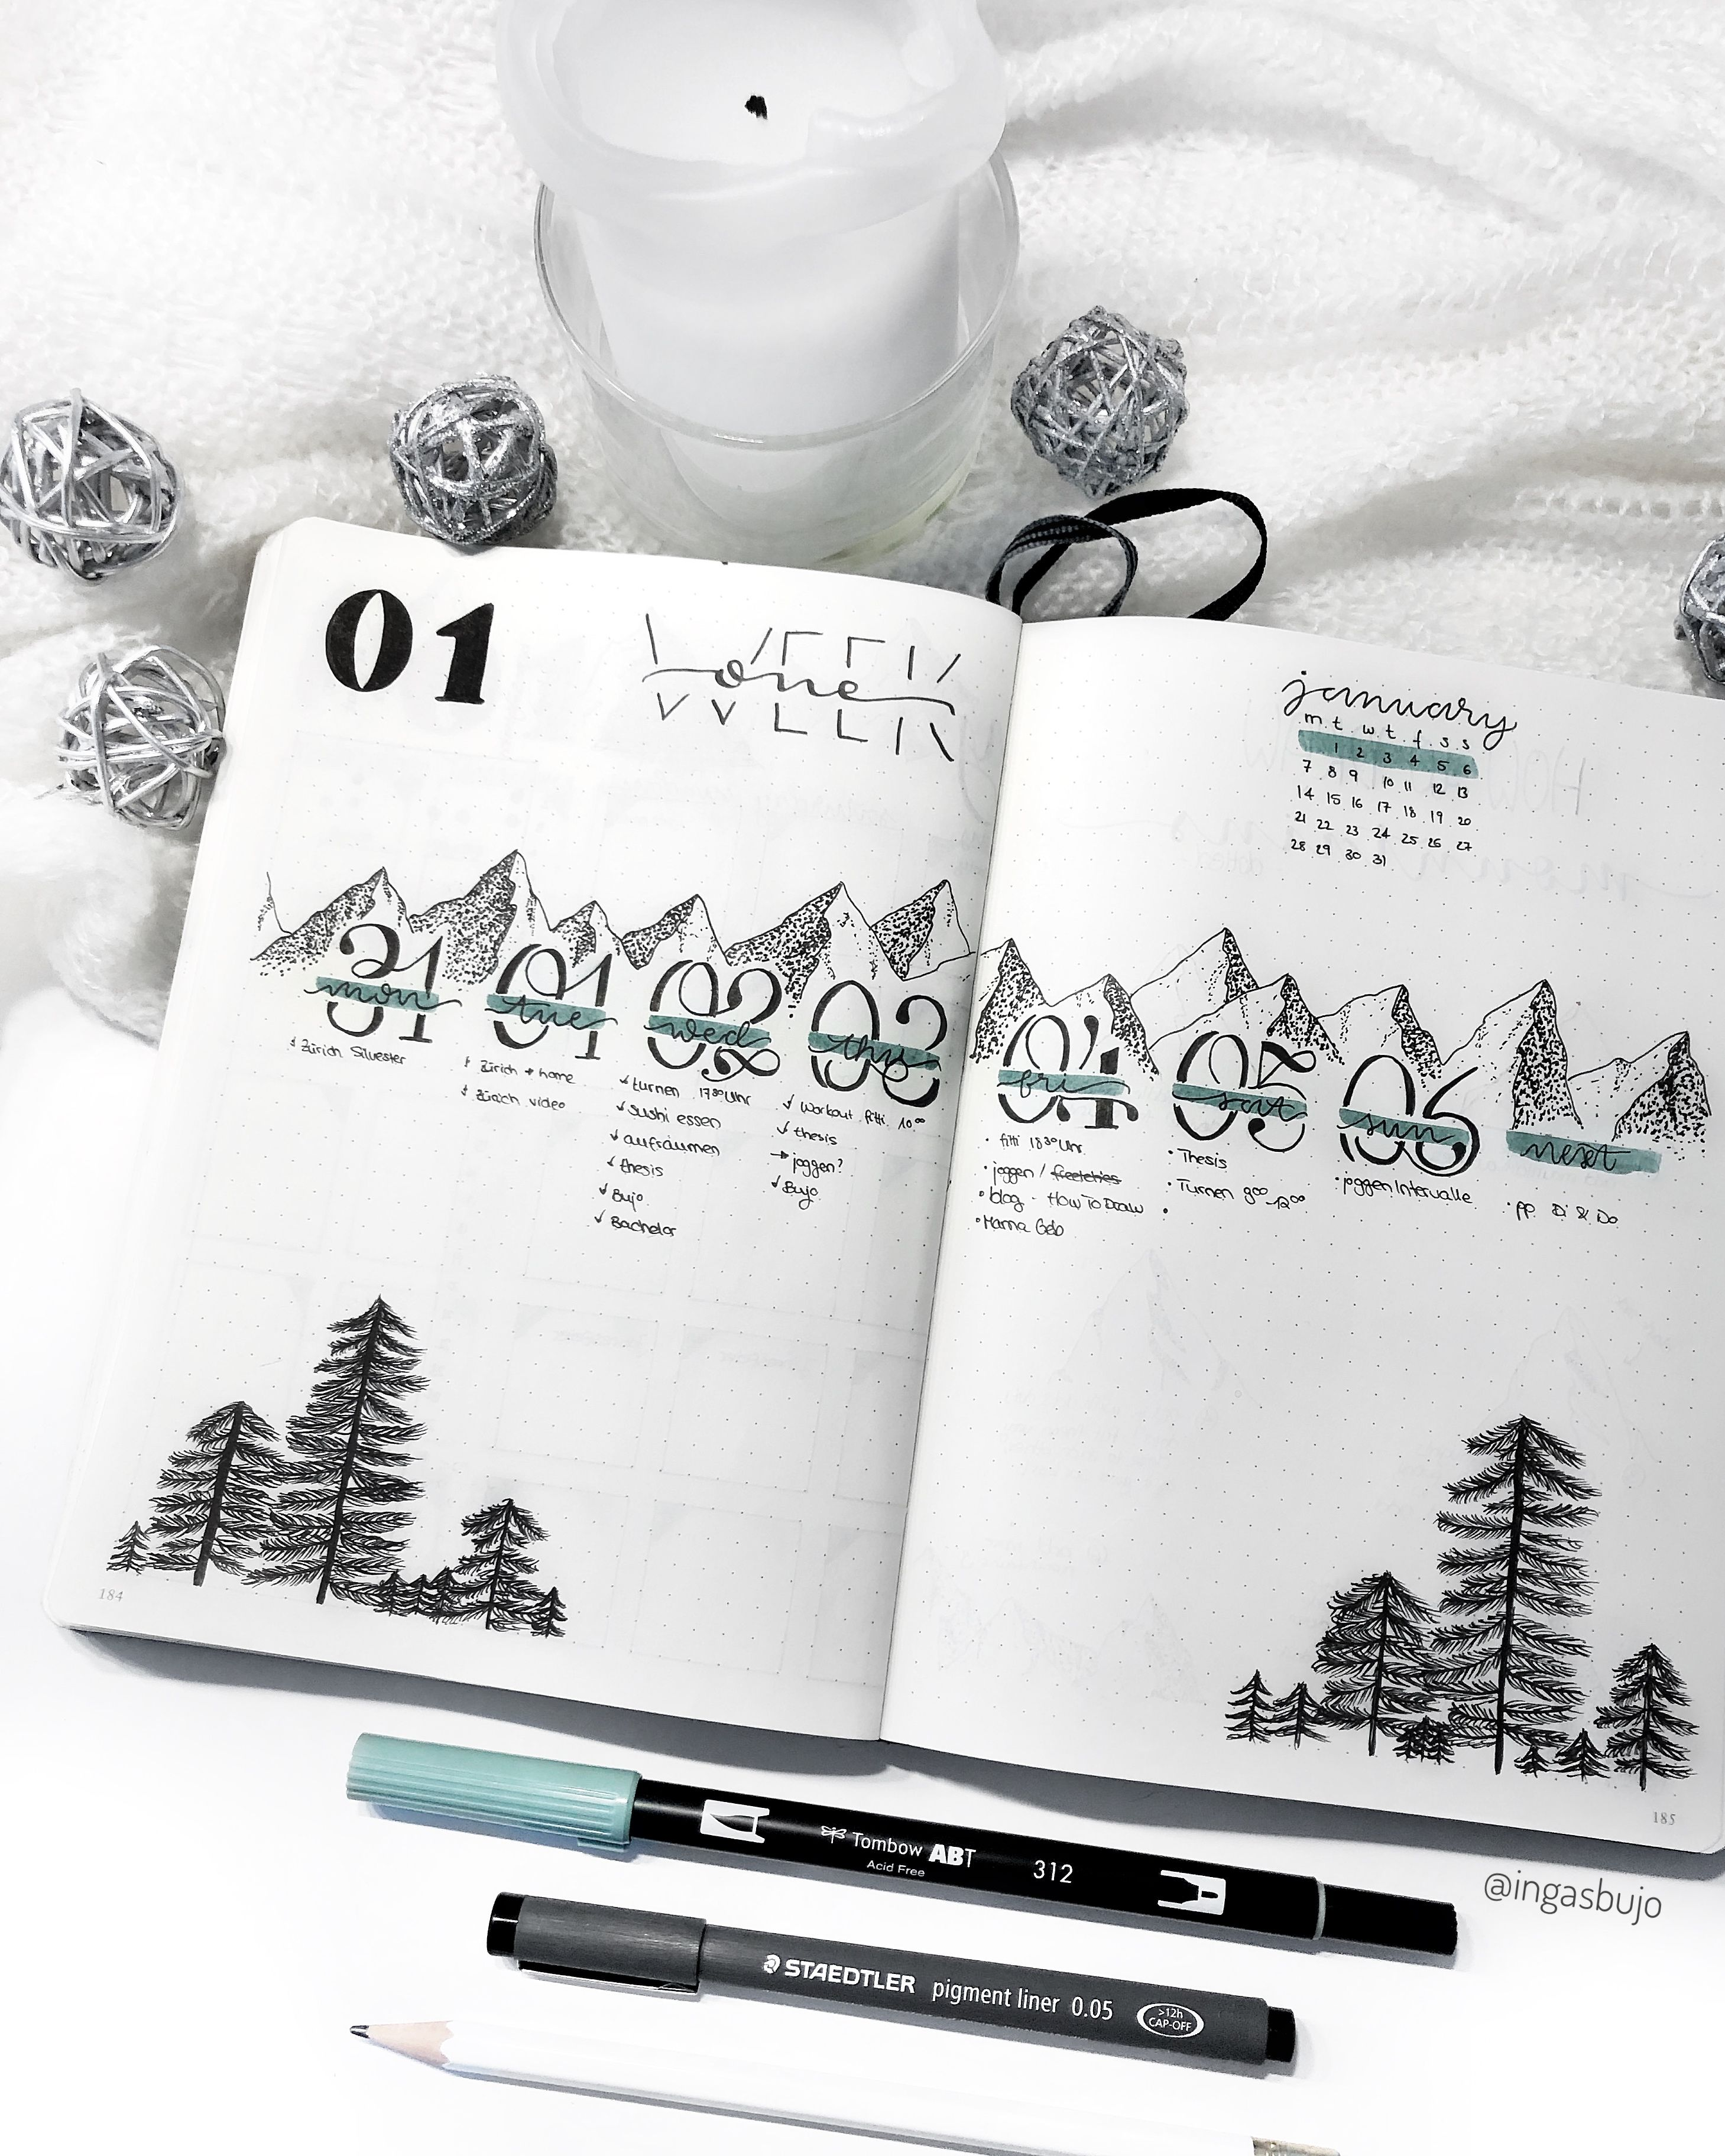 Learn how to draw mountains and pine trees with my step-by-step tutorial. Mountain and pine trees bujo weekly spread. For January I use my mountain theme. First week of January, January weekly spread, bujo mountain theme #bulletjournal #bulletjournalweekly #weeklyspread #bujoweeklyspread #bujoweekly #bujojanuary #bujo2019 #bujomountaindrawing #mountaindrawings #howtodraw #octoberbulletjournal